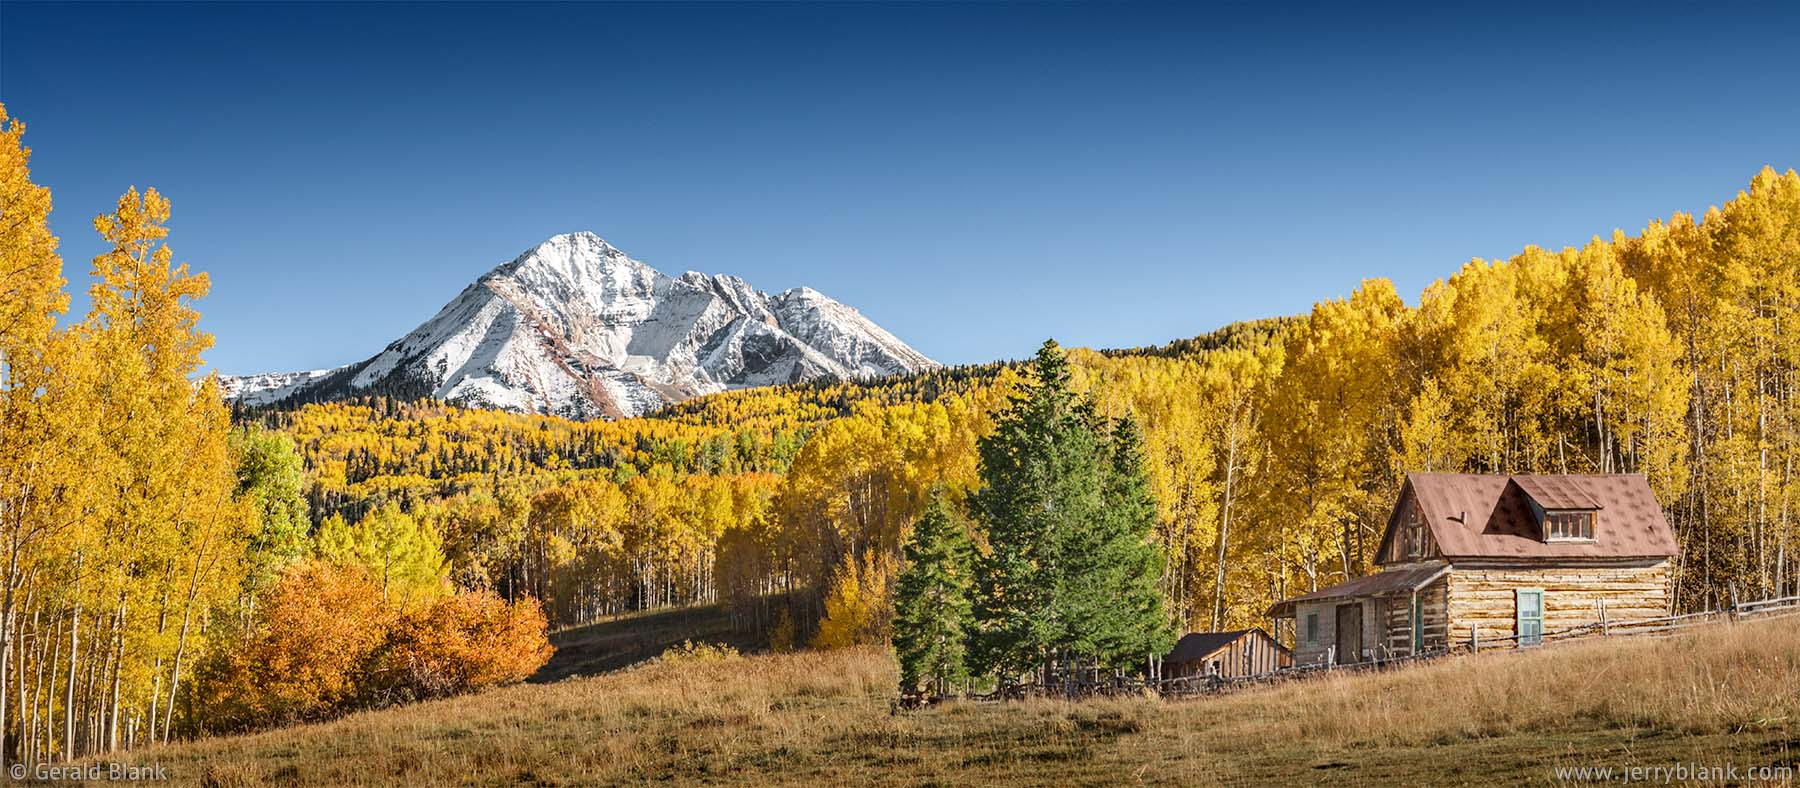 #07036 - Autumn view of Sunshine Mountain from old cabin on Wilson Mesa, southwest of Telluride, Colorado - photo by Jerry Blank